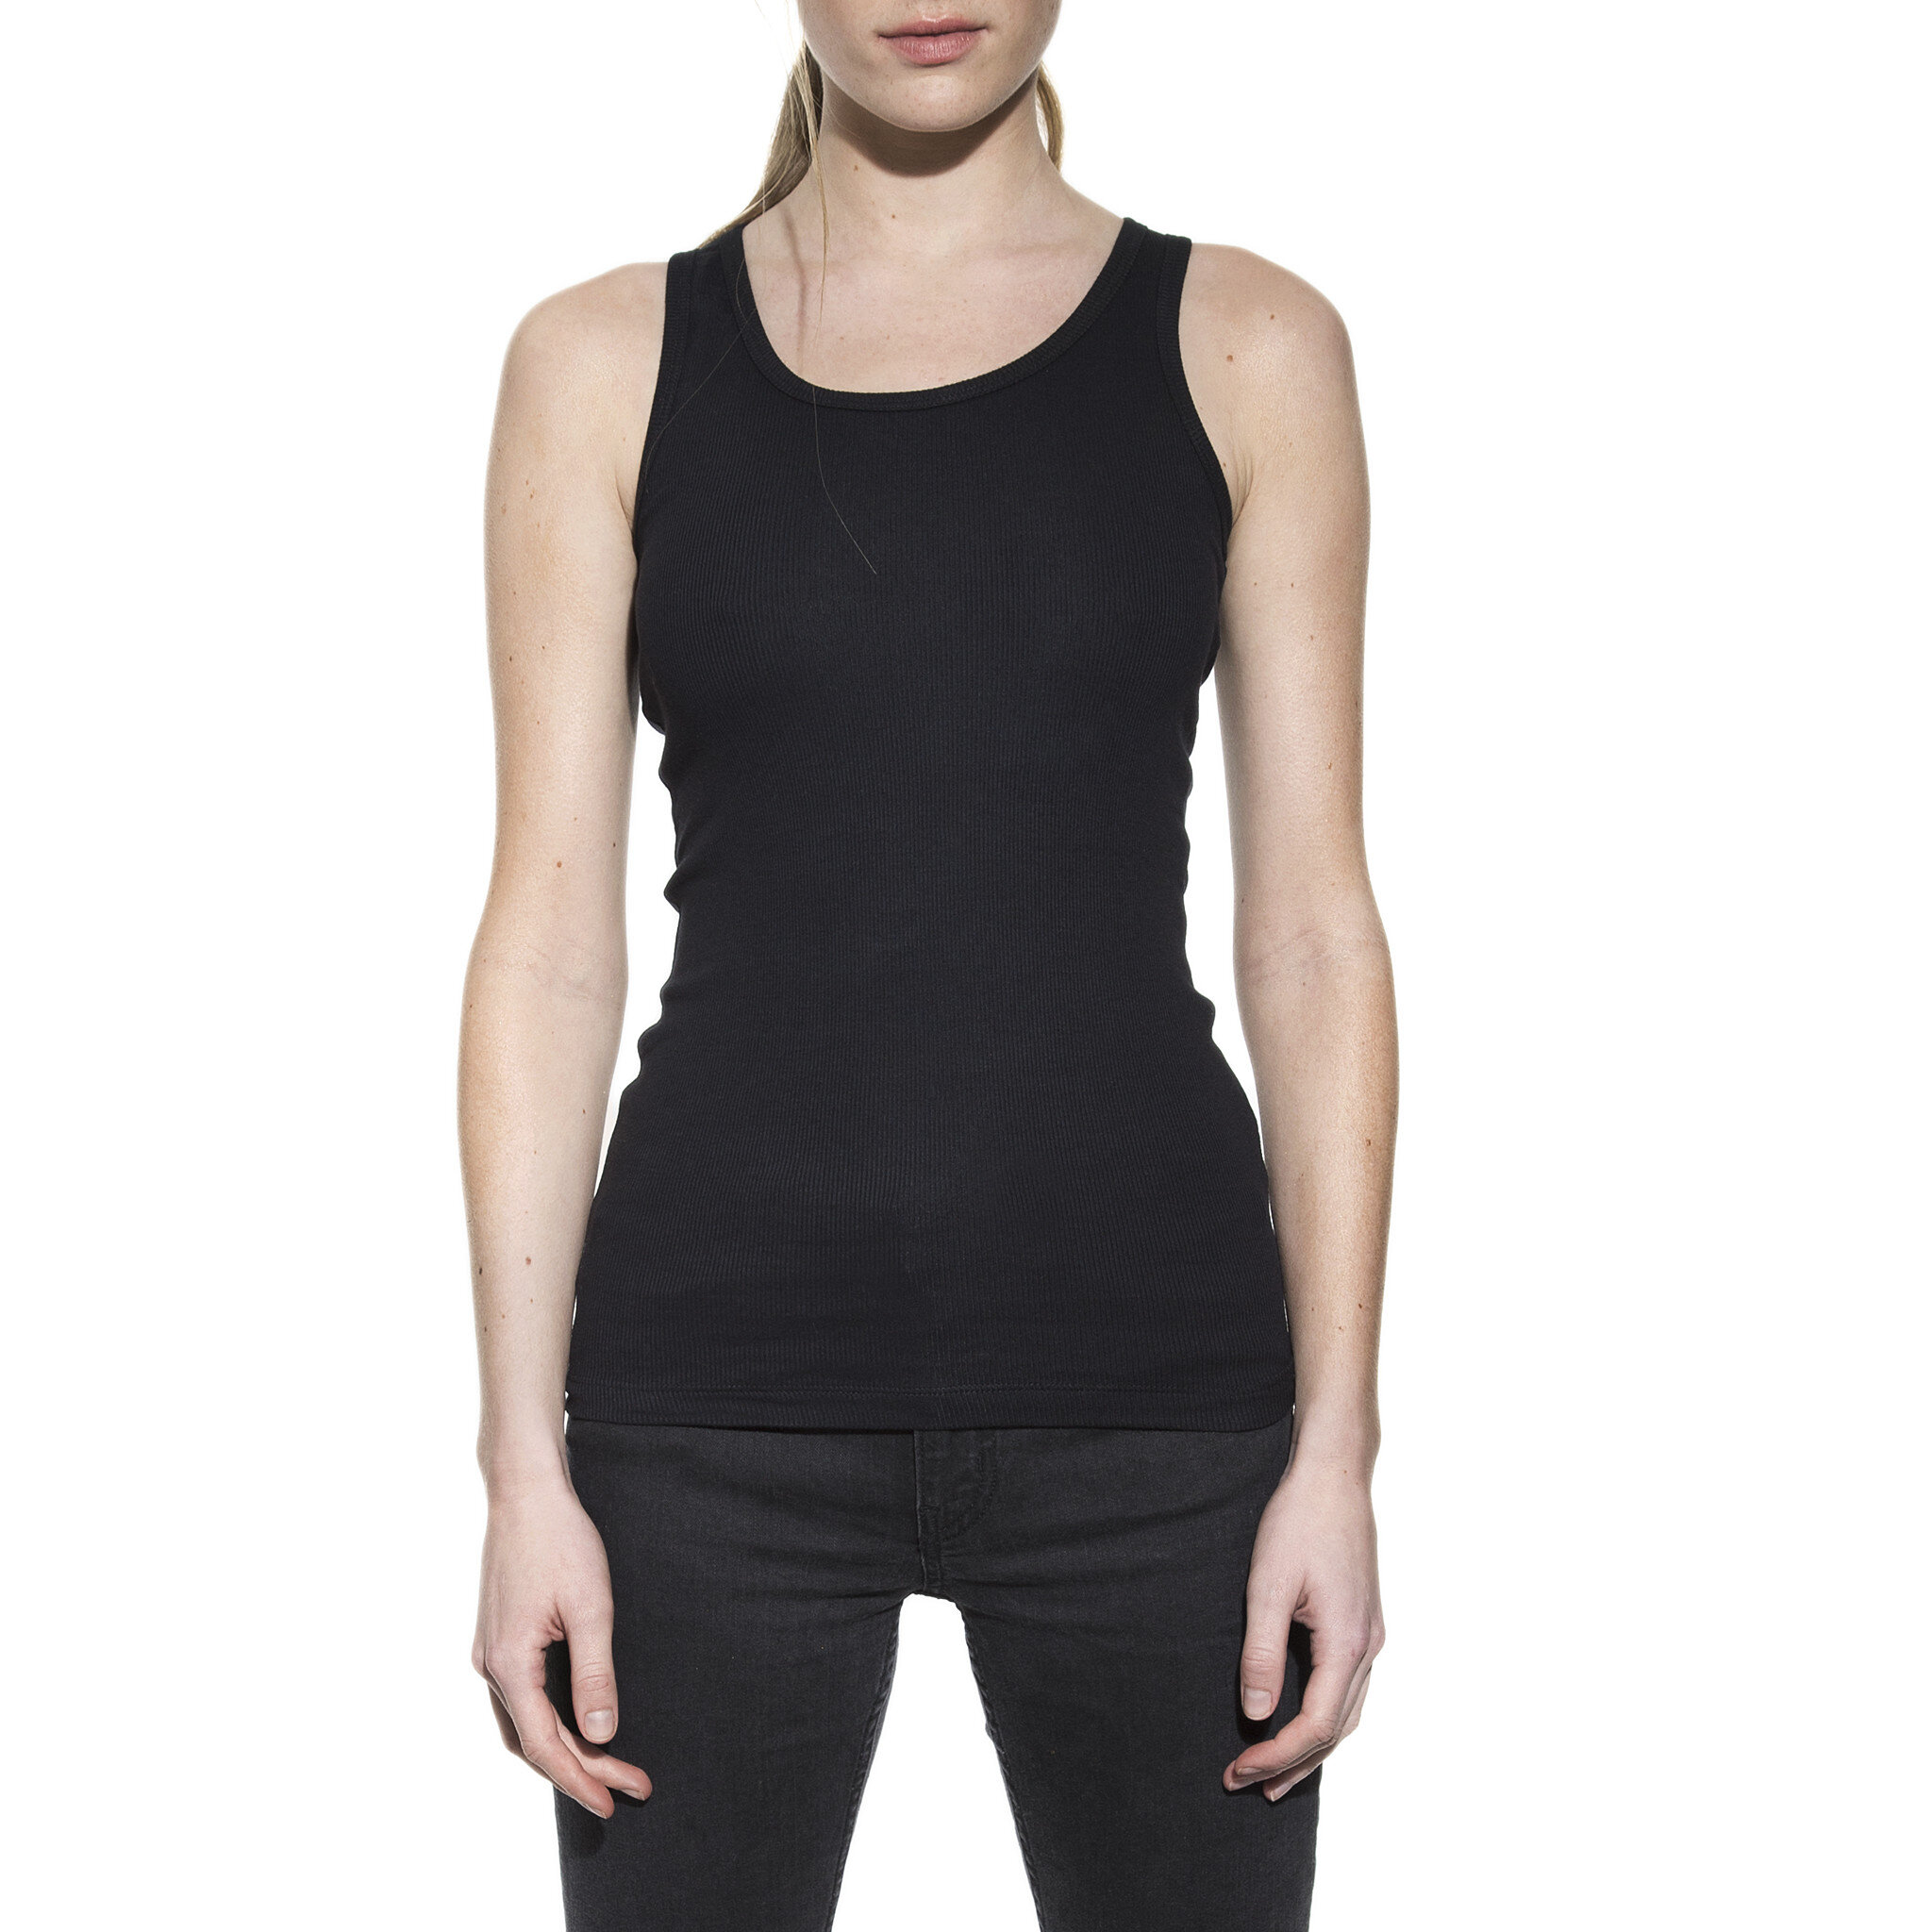 605102_Woman_Tank_ribbed_black_1